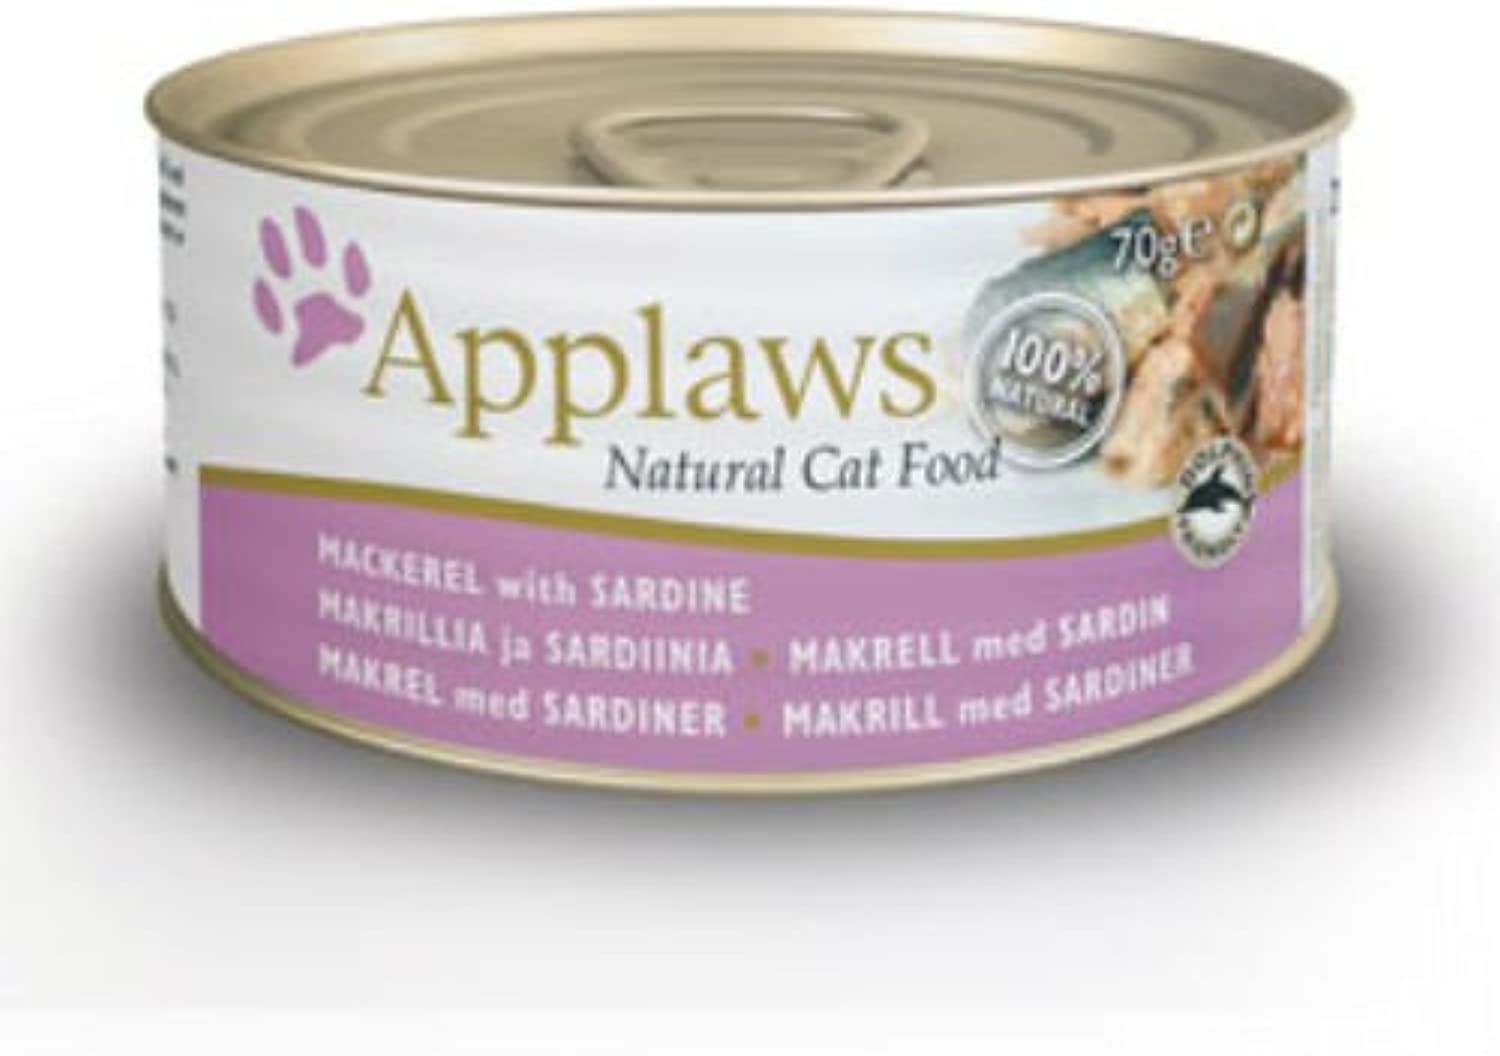 Applaws Cat Pacific Mackerel and Sardine (Case of 24) 70G